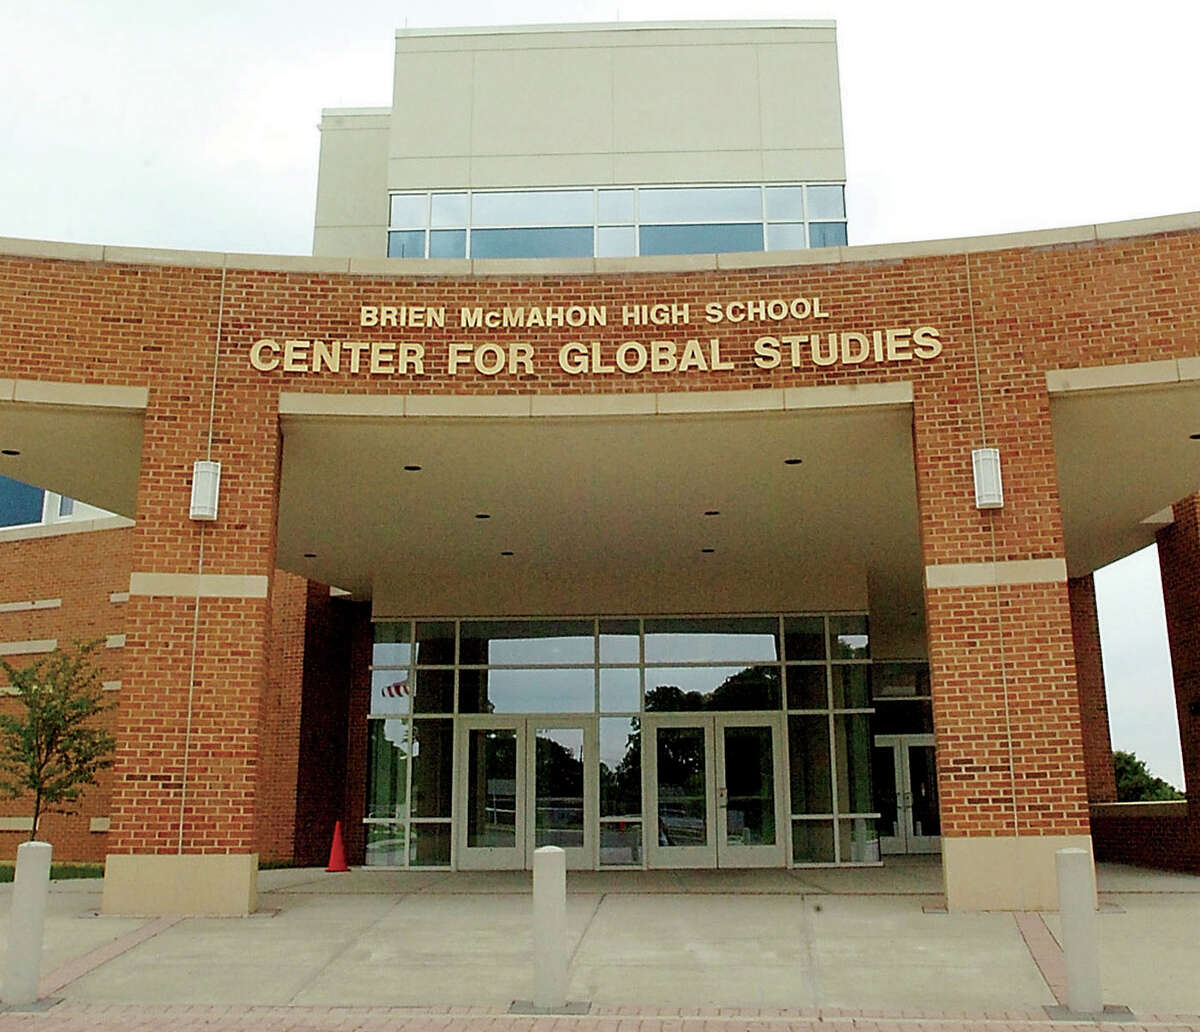 Julie Parham, director of Global studies, sent a letter to Bridgeport earlier this month saying it intended to charge the district $3,000 per pupil, or $210,000 altogether for 60 Bridgeport students attending Norwalk's Center for Global Studies at Brien McMahon High School.